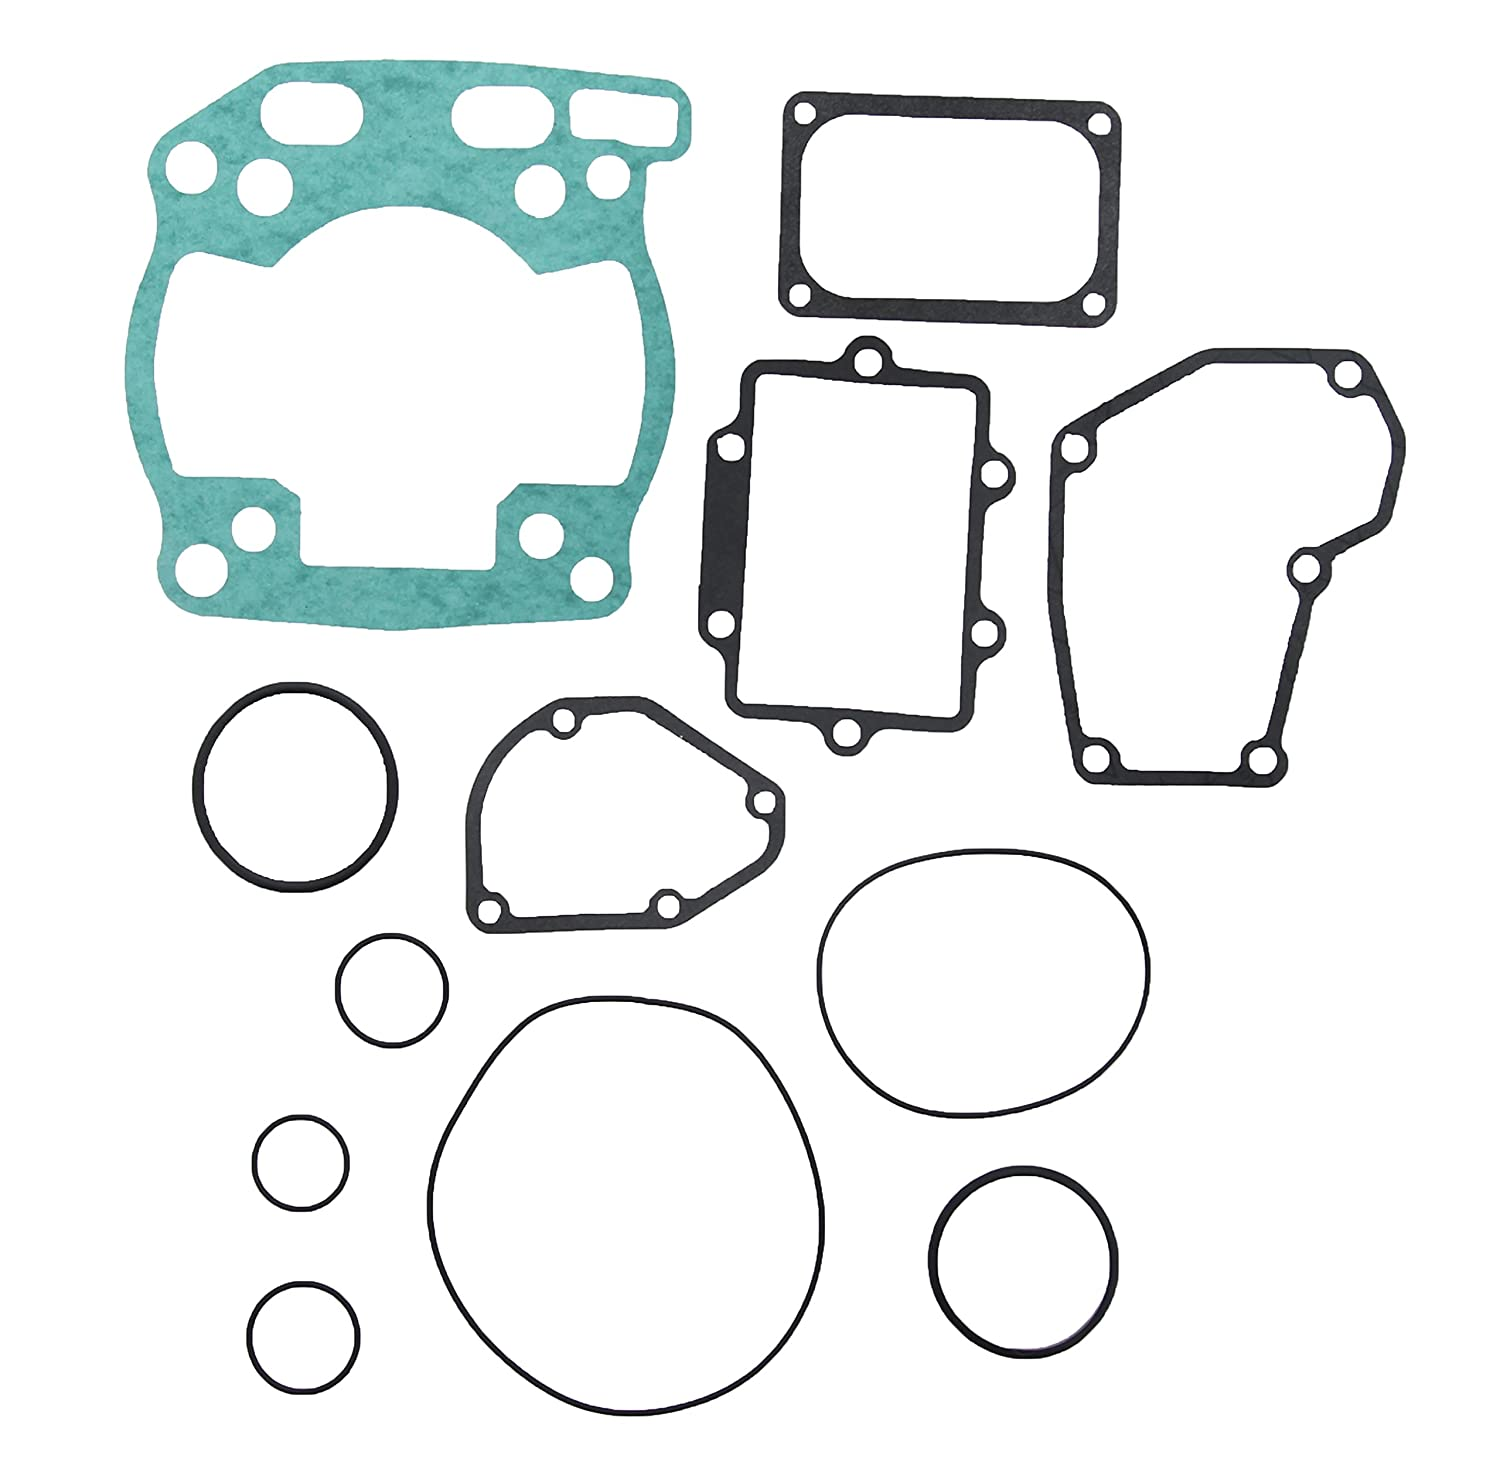 Top End Gasket Kit fits Suzuki RM250 RM 250 1999 2000 by Race-Driven